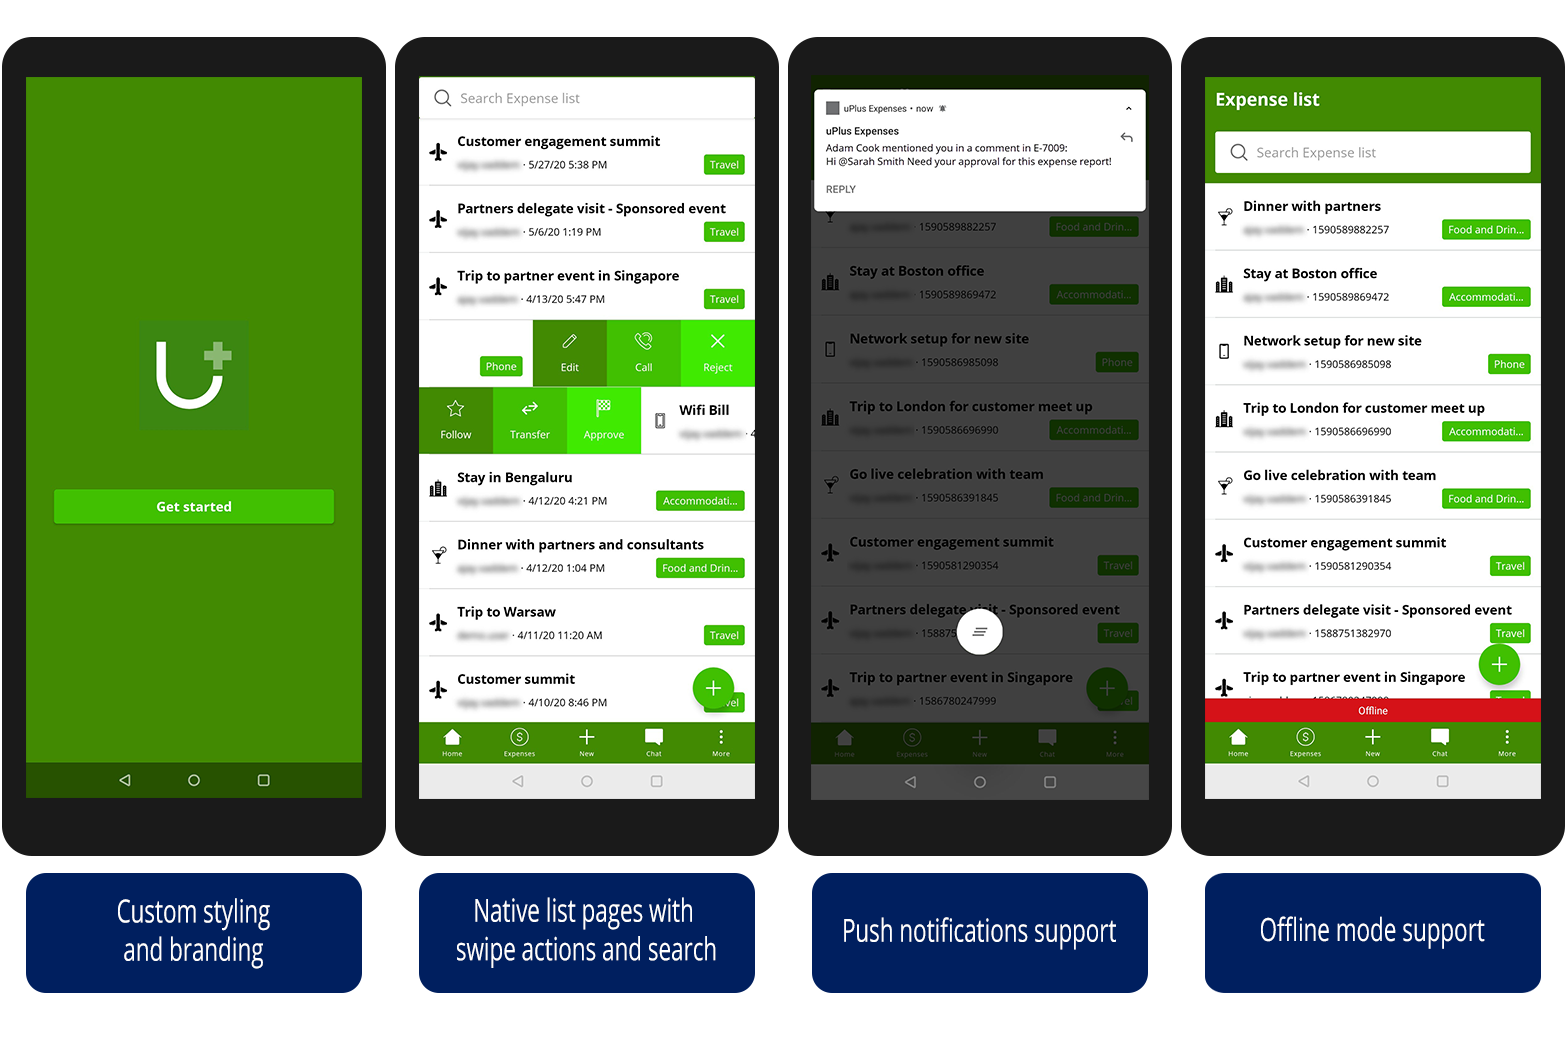 The image shows an Expenses reporting app on four mobile devices, each                             representing a different mobile feature: custom styling, native list                             pages, push notifications, and offline support.